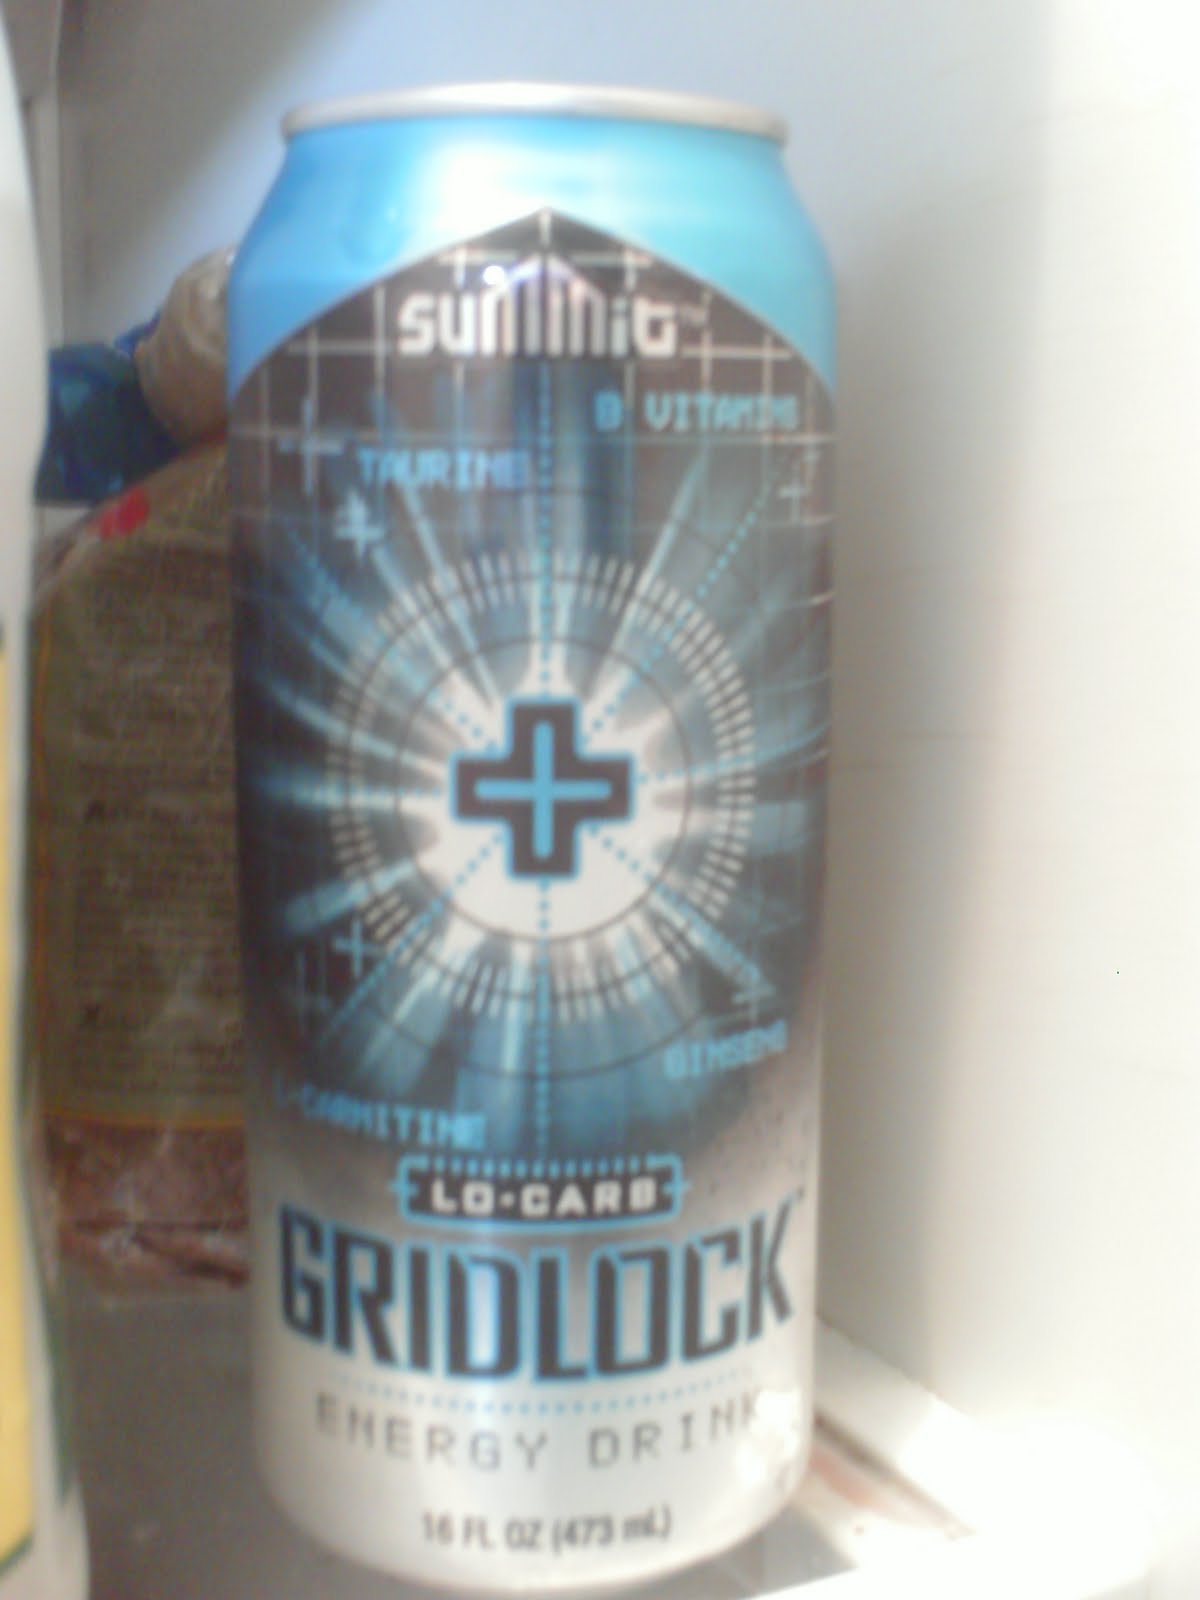 Energy Drink Heaven: Gridlock:sugar free